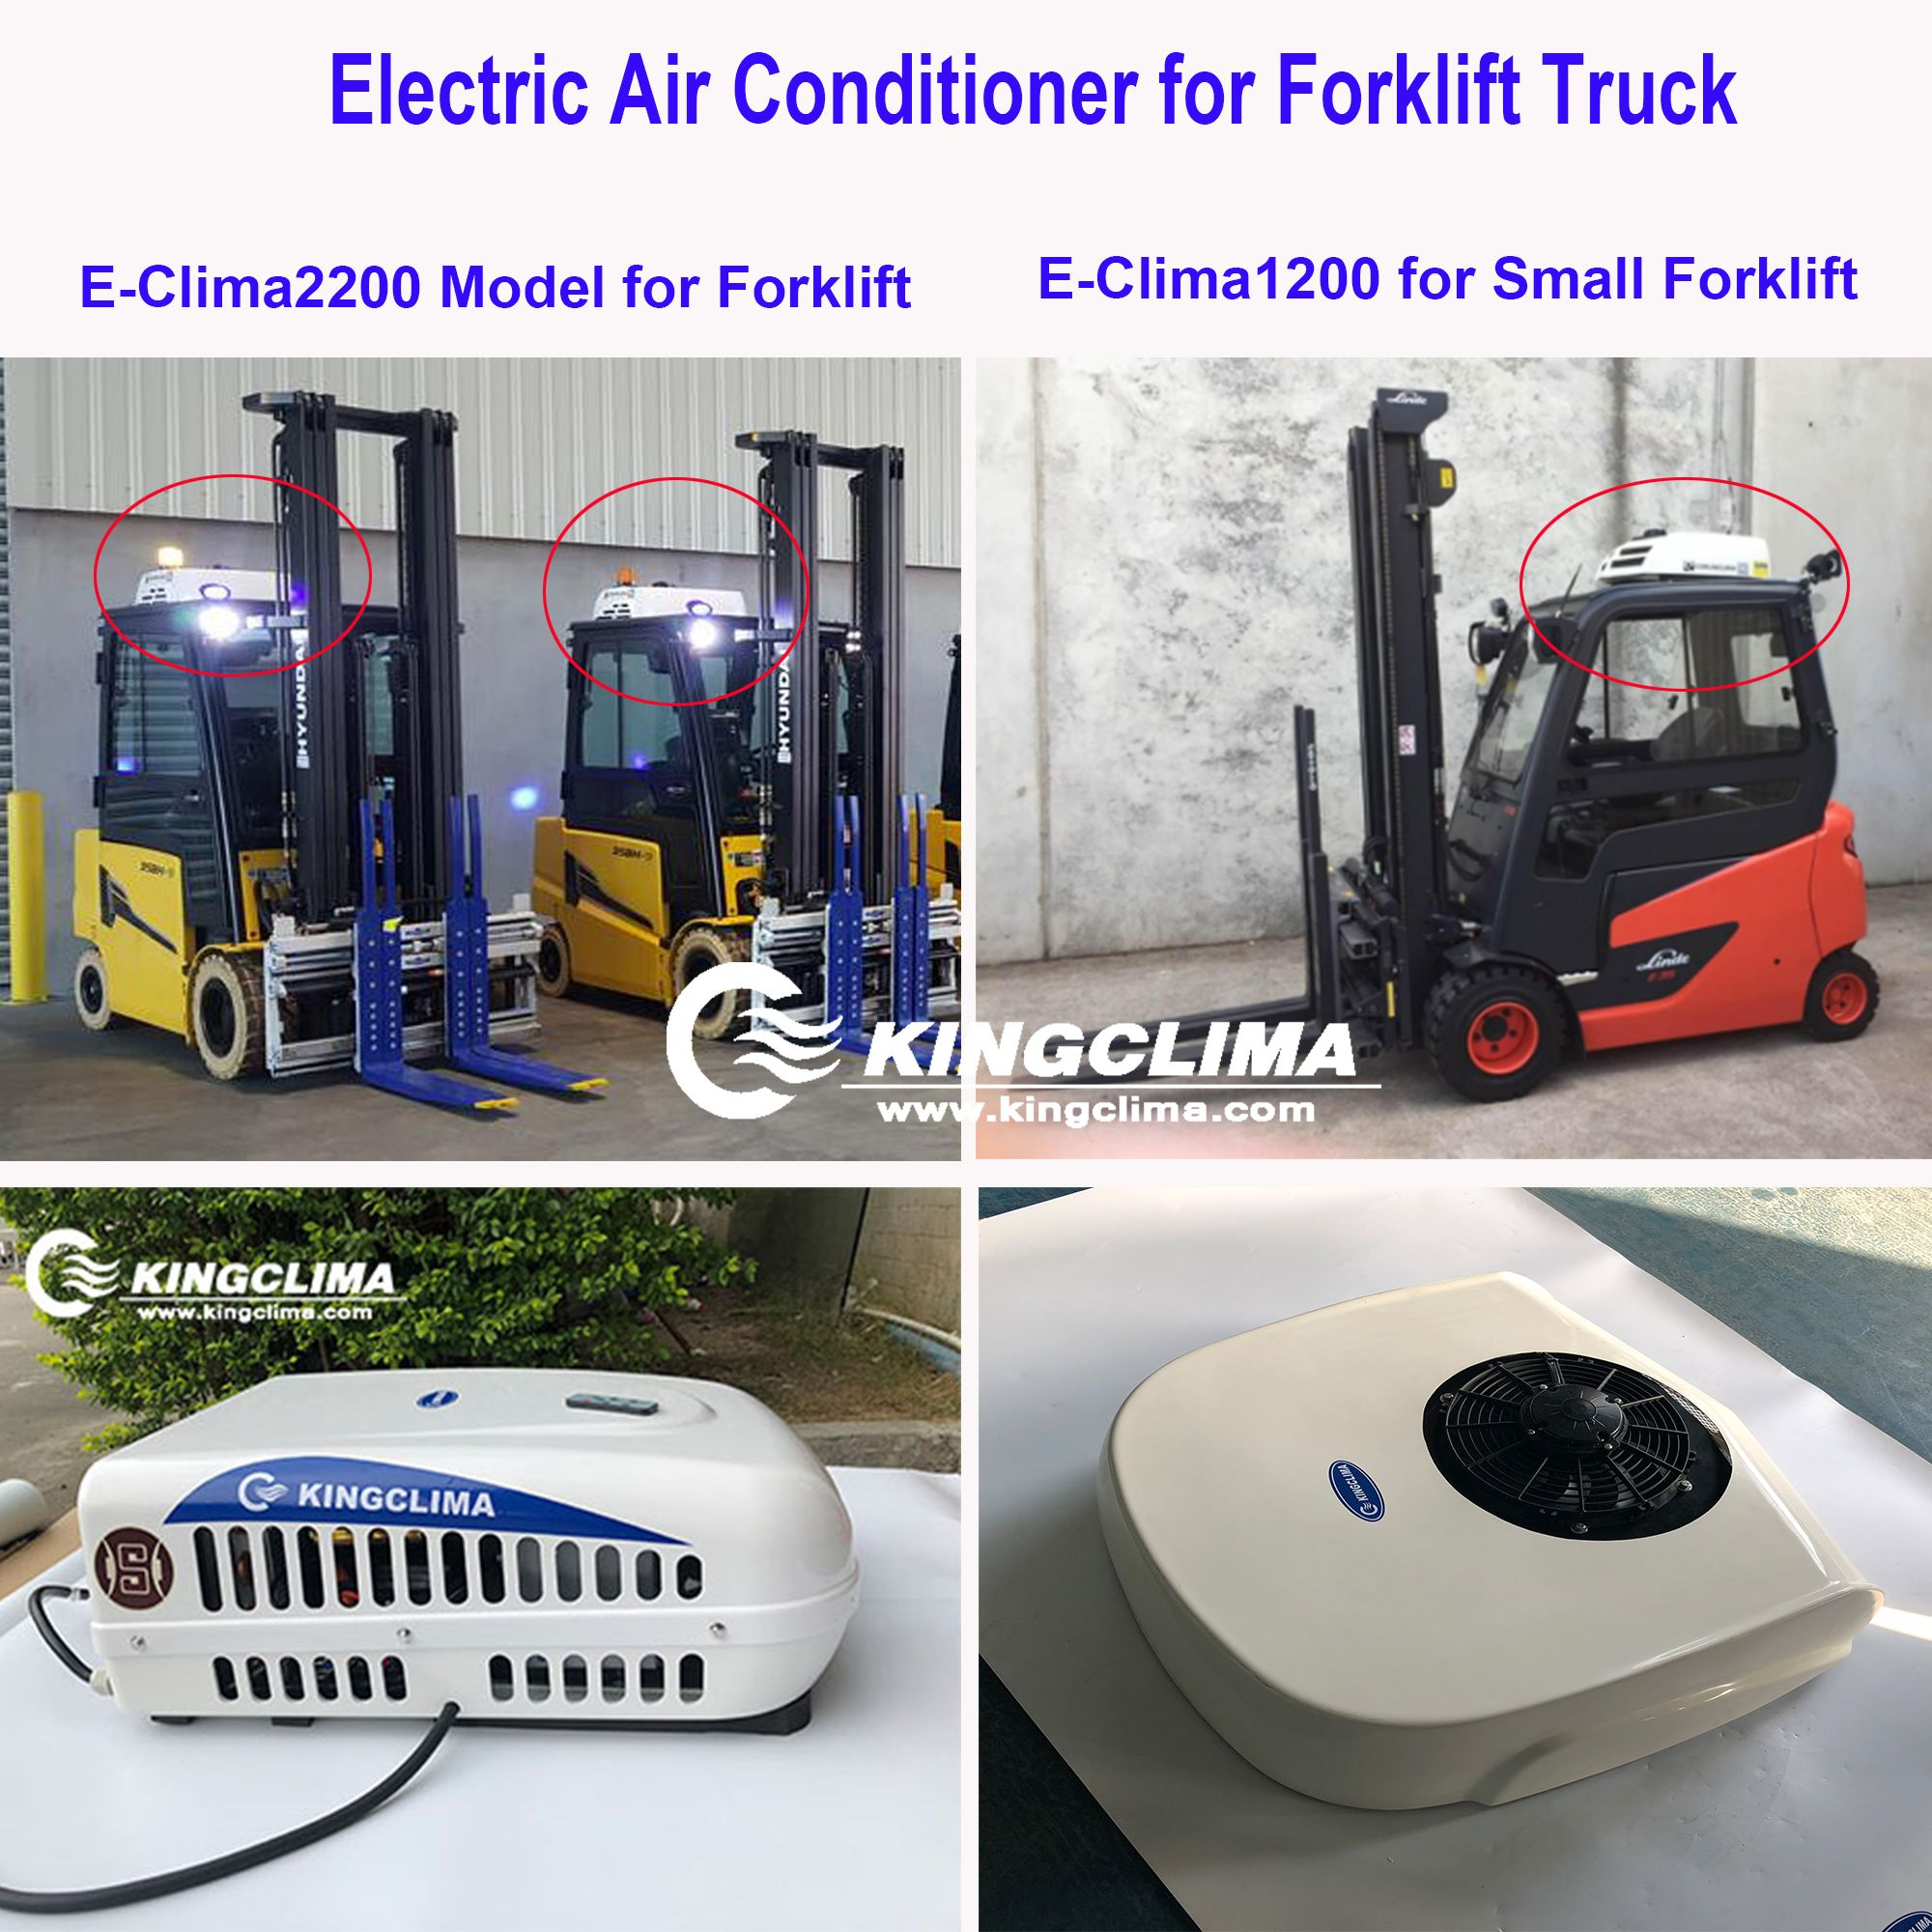 Totally electric air conditioners for small forklift or